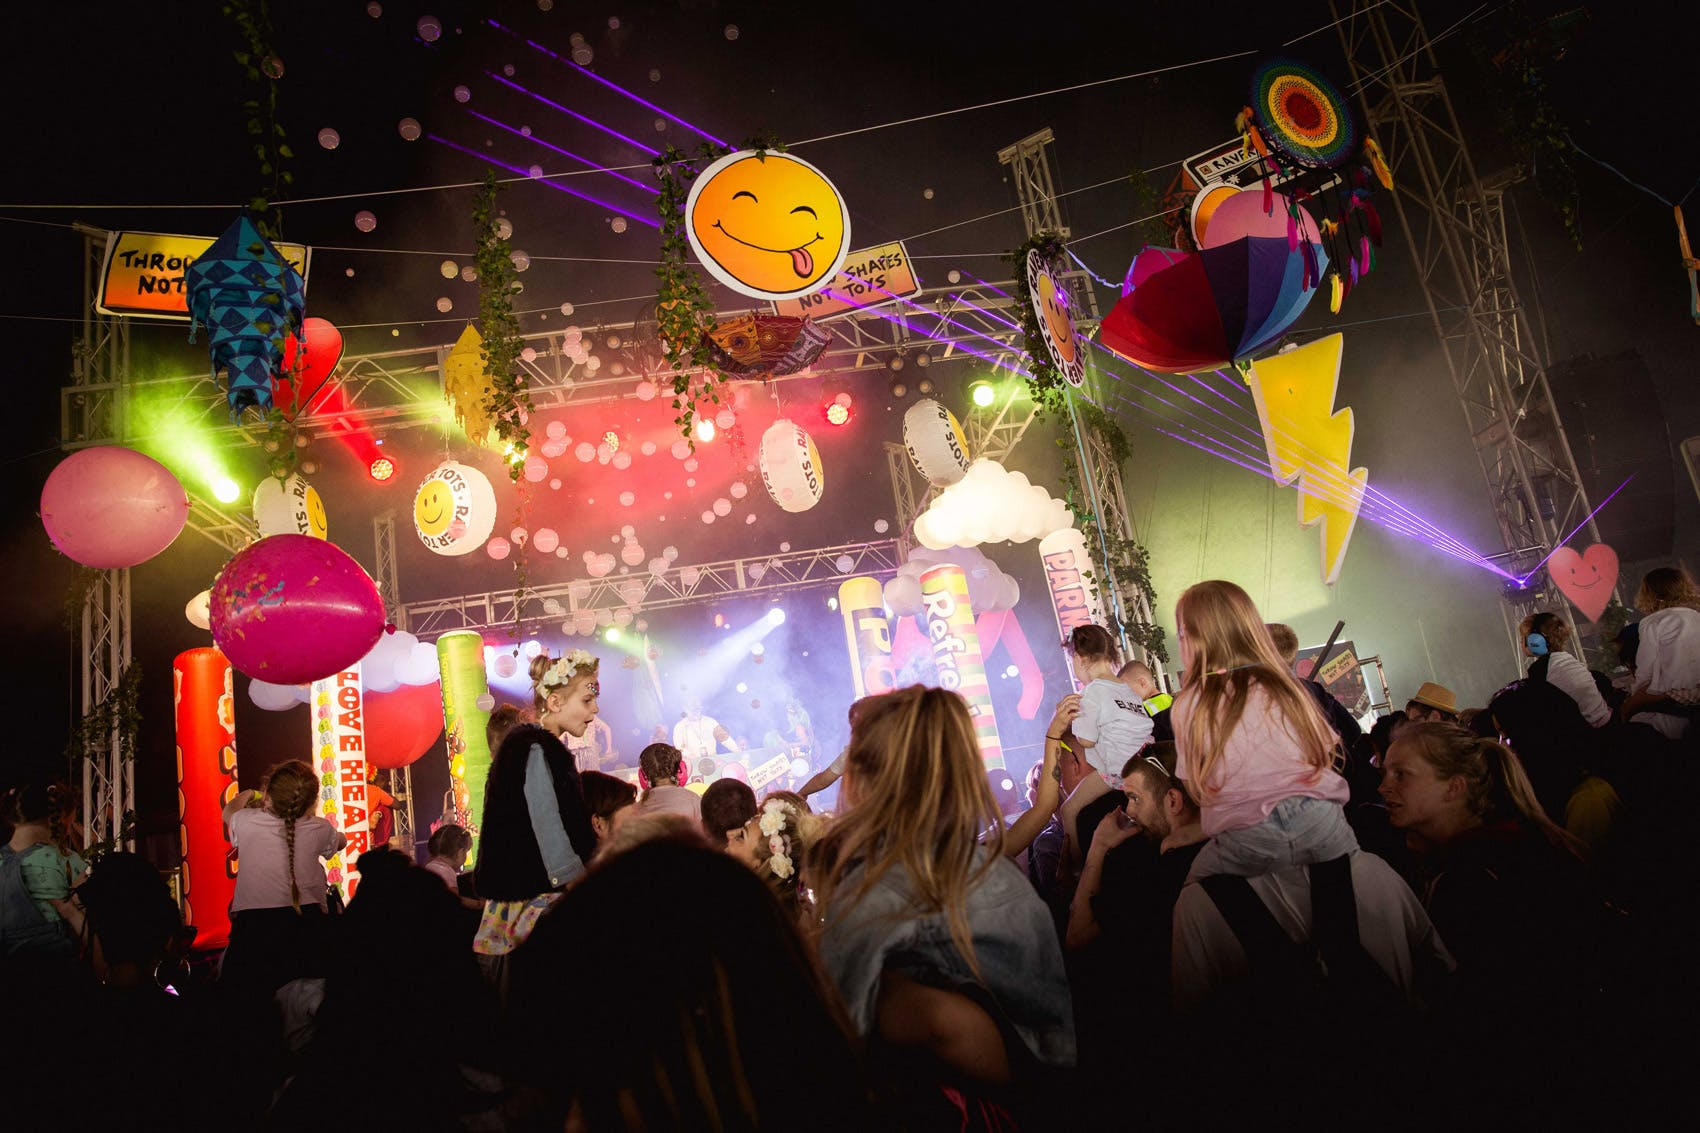 Raver Tots Returns with a summer of fun filled festivals around the UK.